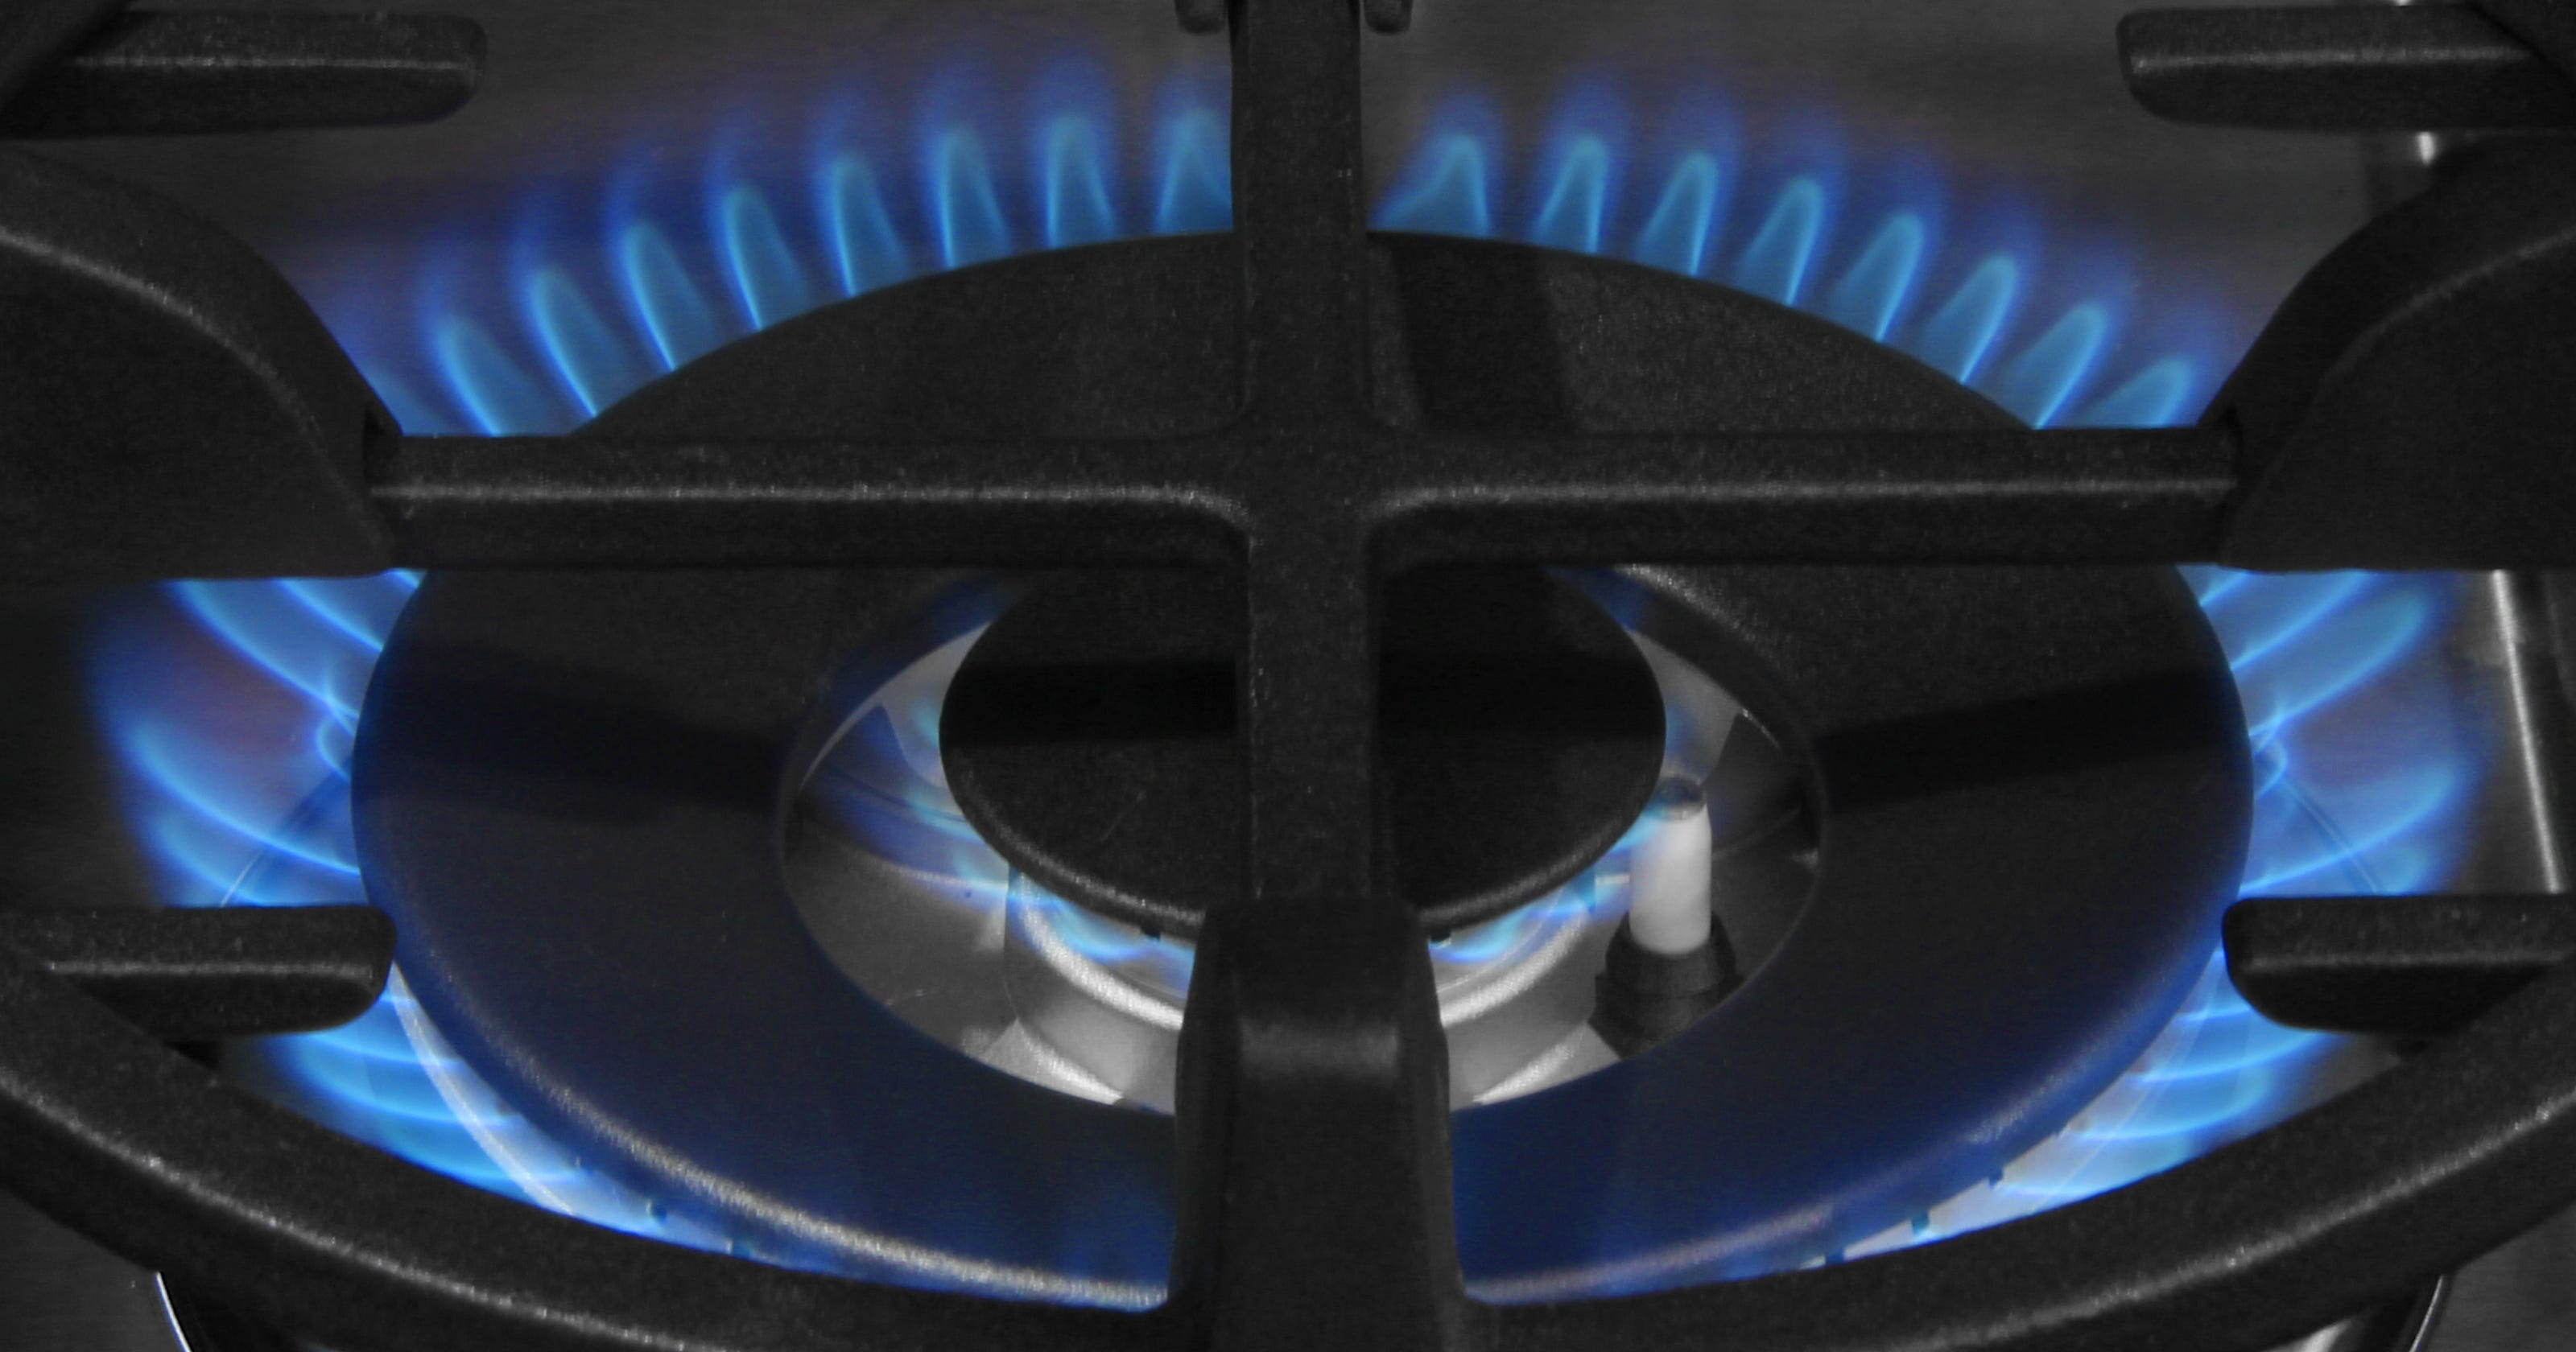 Samsung's fancy new gas range has good looks, can cook